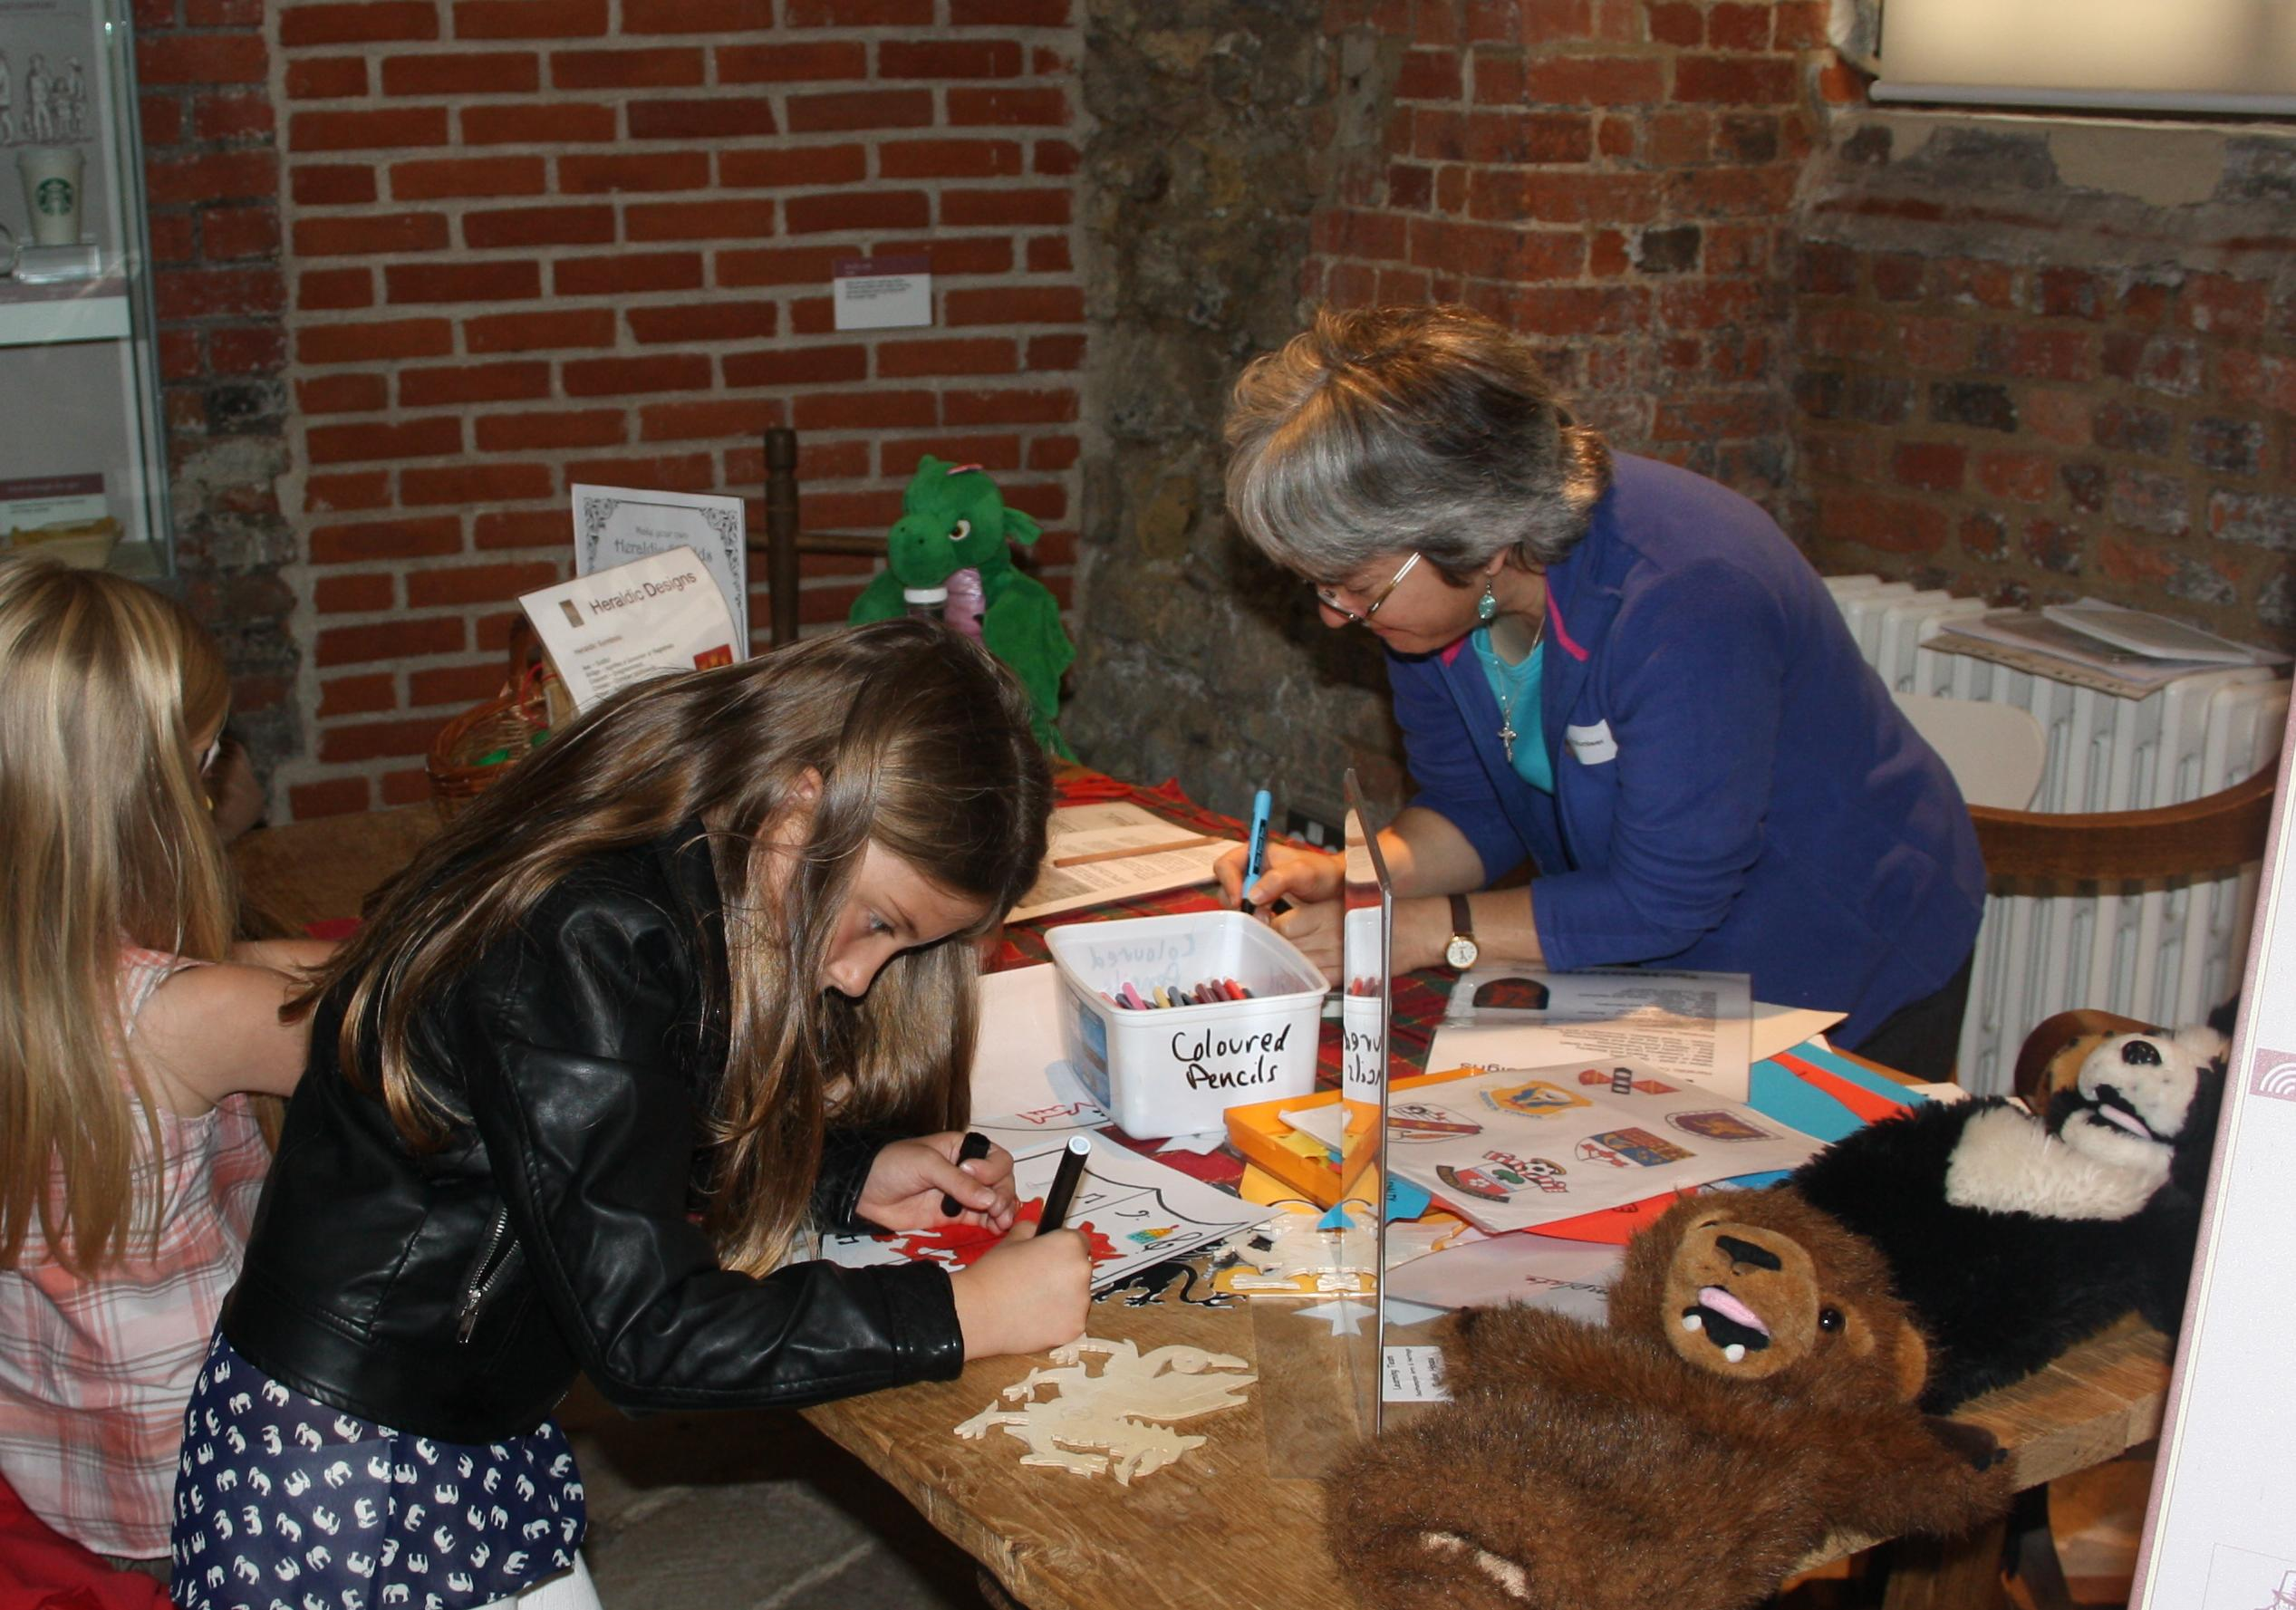 Children and Family Activities | Tudor House and Garden